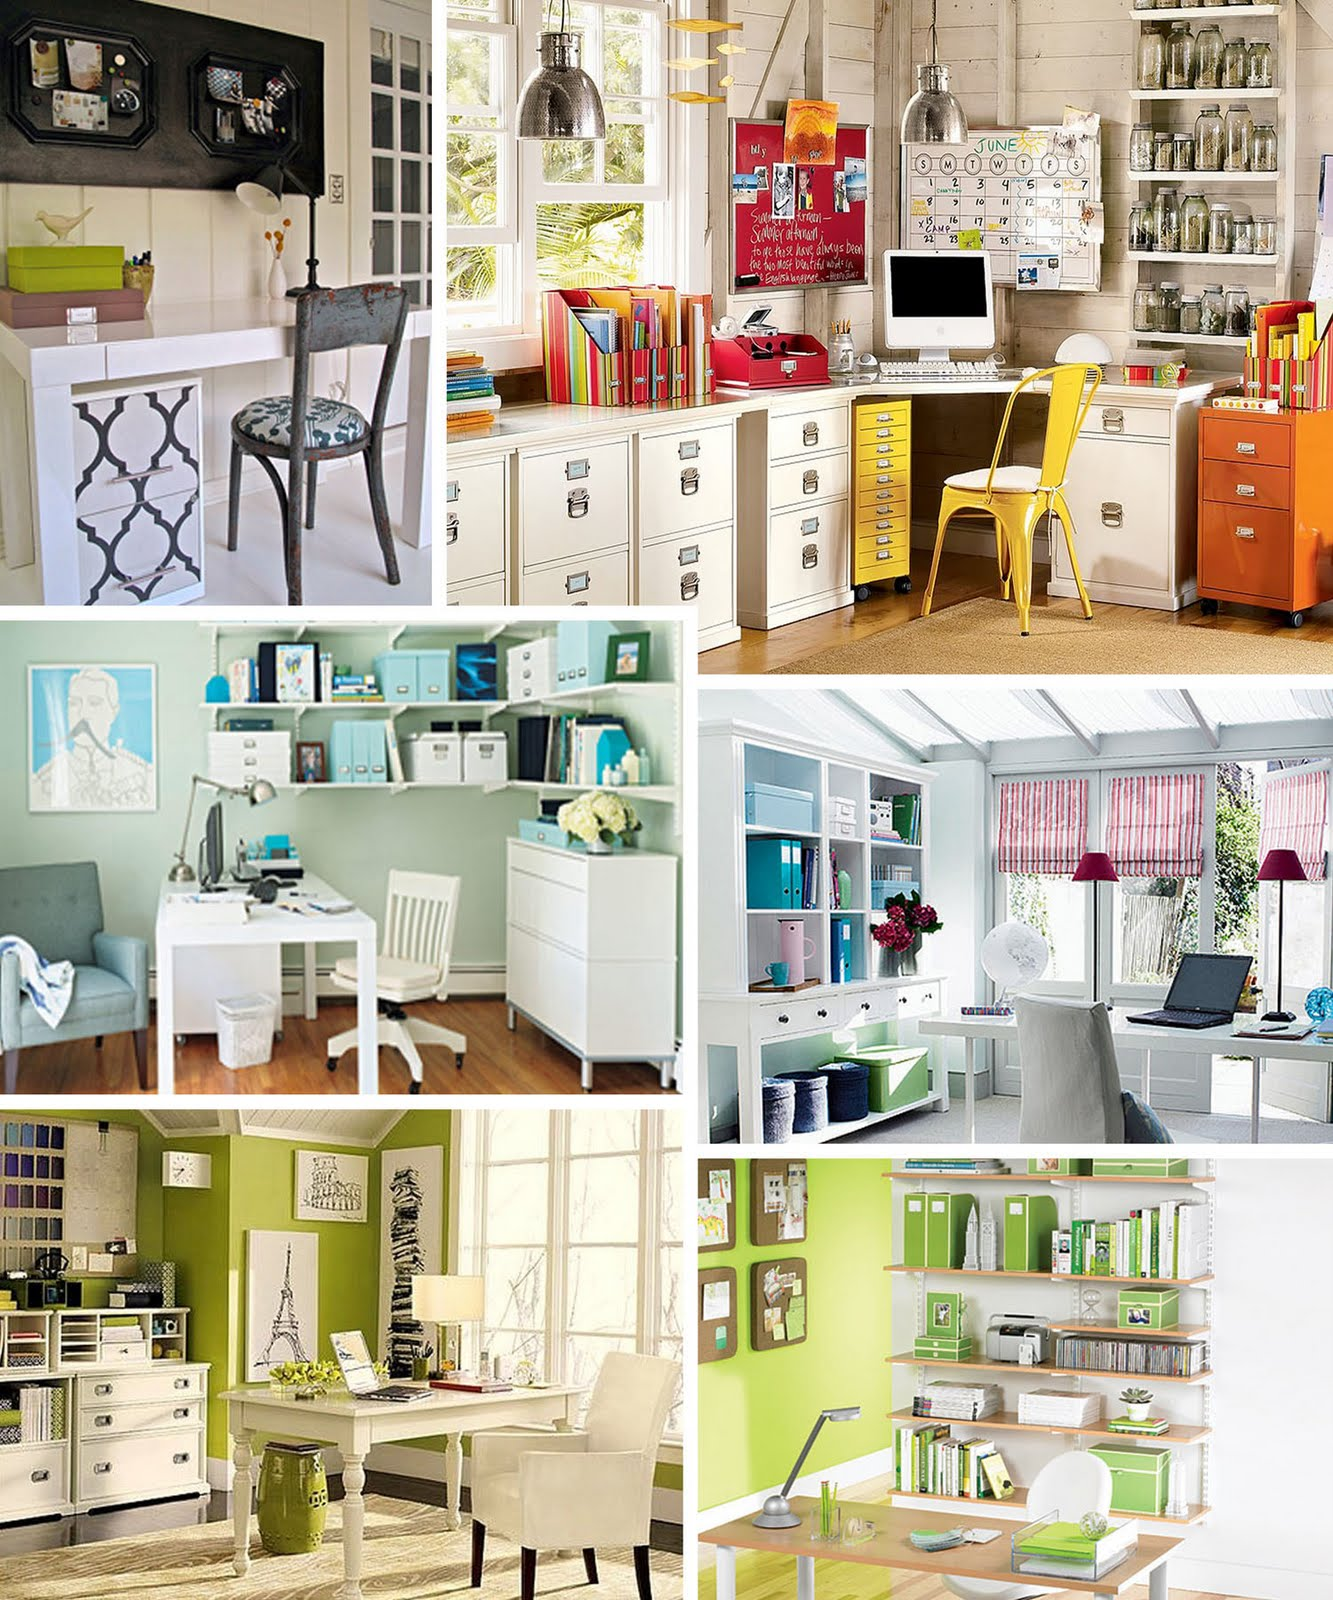 Simplybcreative: Home Office Inspiration